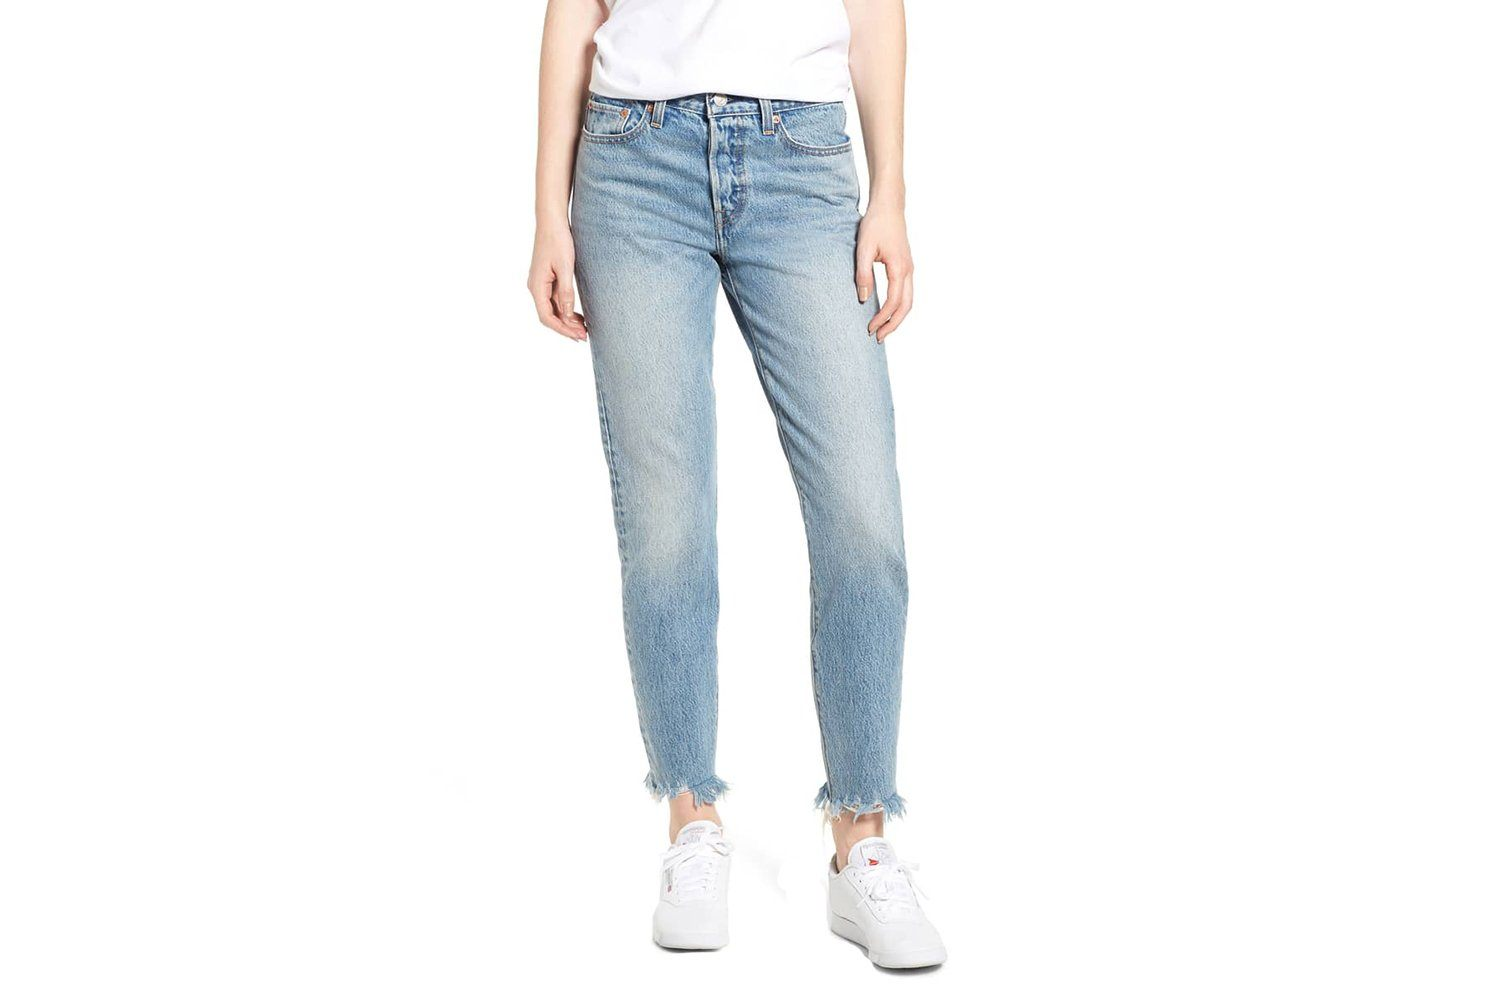 WEDGIE ICON FIT SHUT UP - 383361 WOMENS SOFTGOODS LEVIS BLUE 28